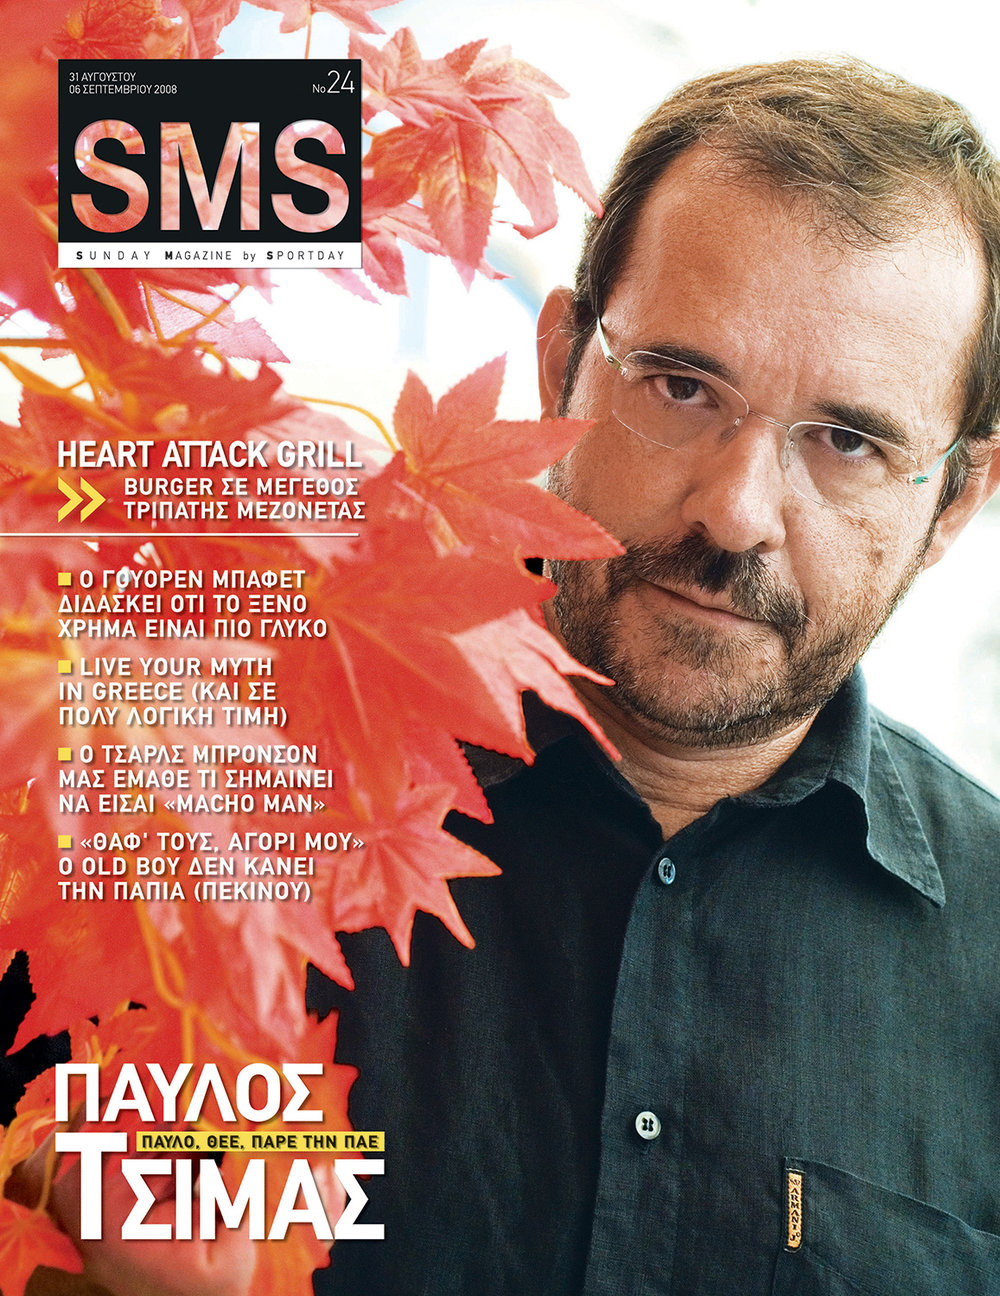 Pavlos Tsimas / journalist / SMS Sportday No 24